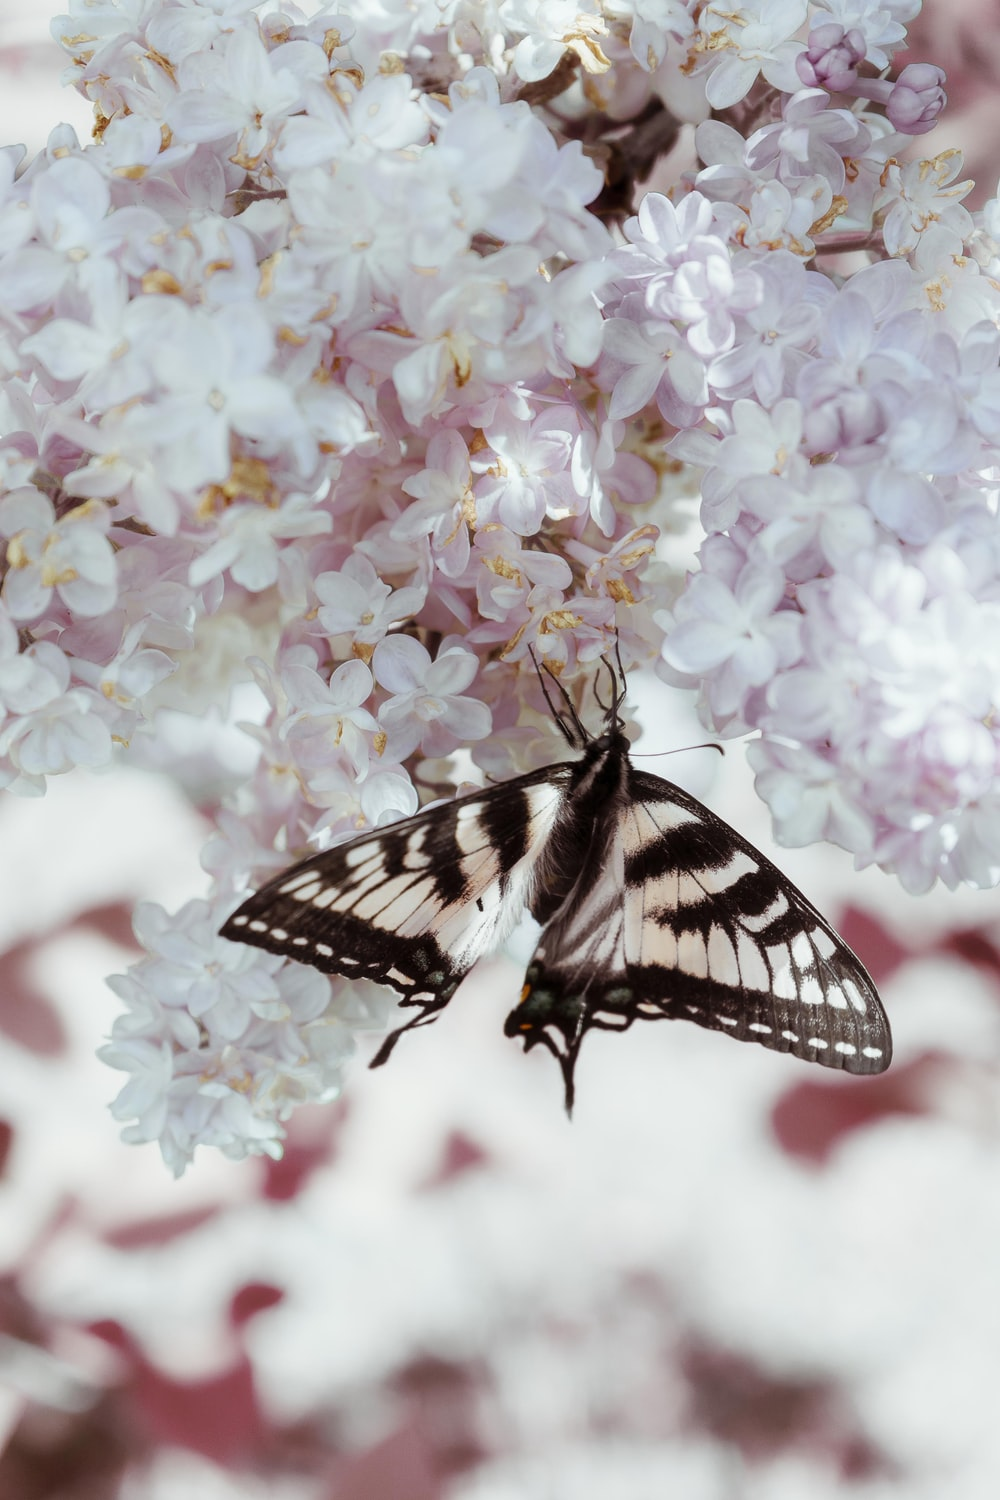 black and white butterfly perched on pink flower